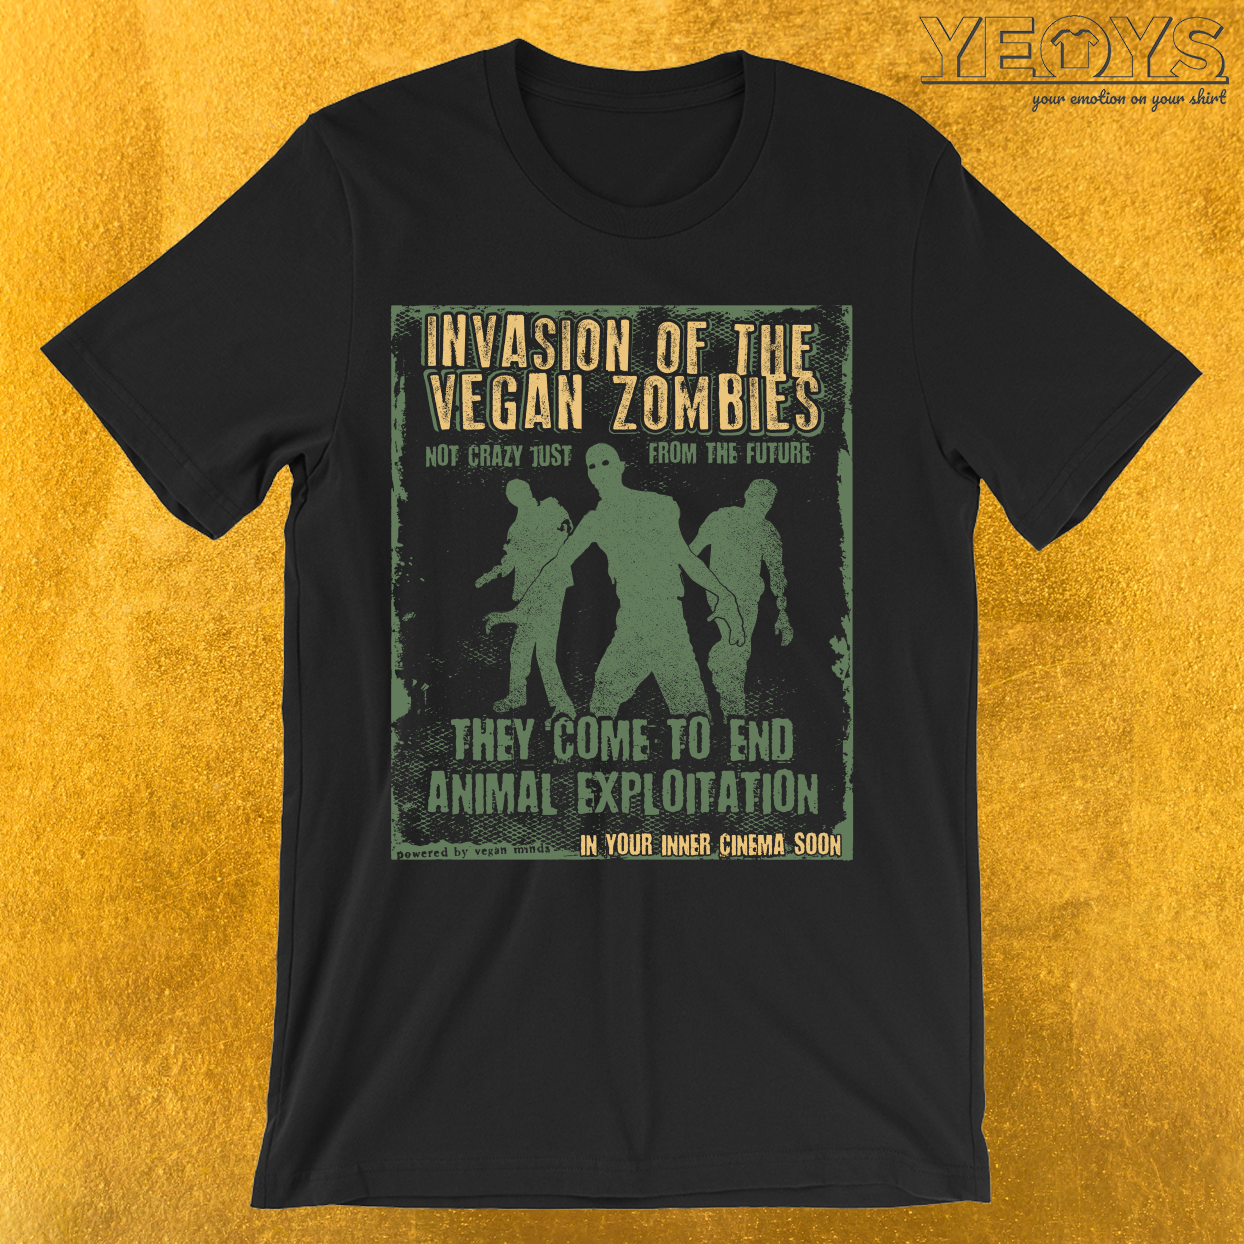 Invasion Of The Vegan Zombies T-Shirt